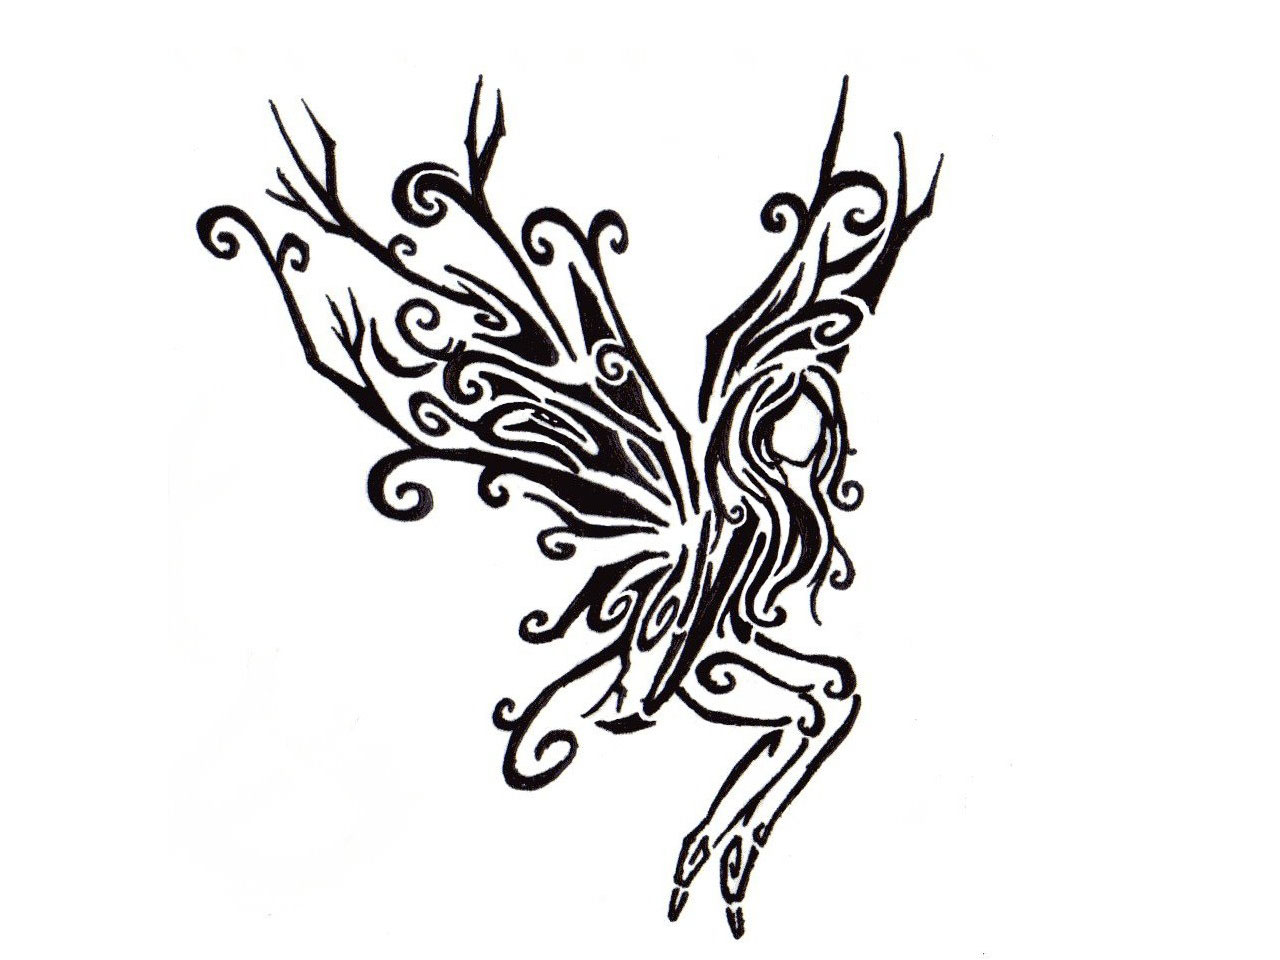 Fairies tattoos designs - Black Tribal Flying Fairy Tattoo Design For Girl